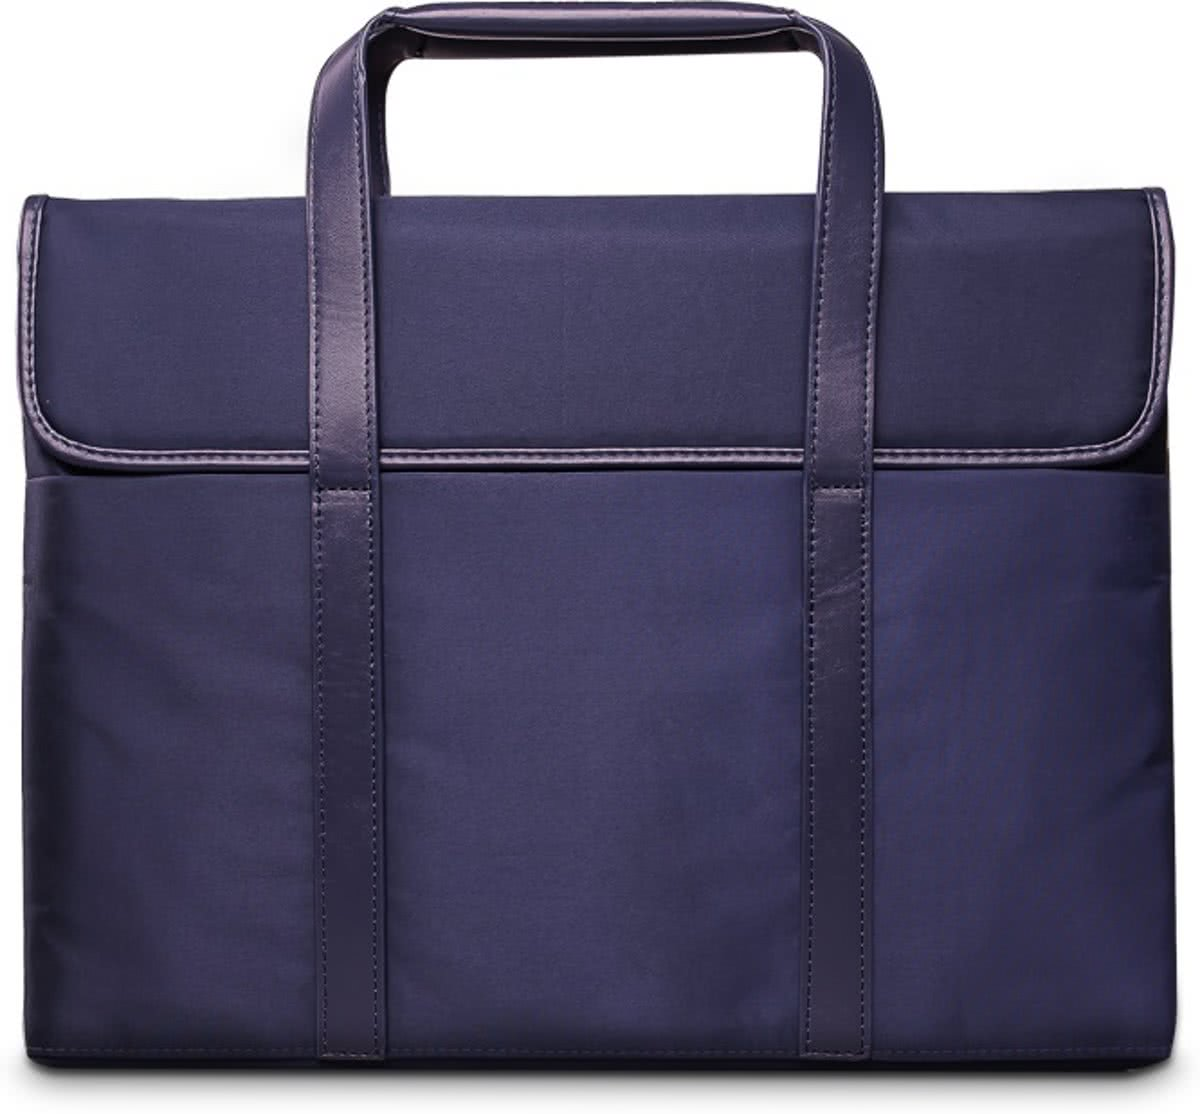 Smart Laptoptas 13.3 / 14 inch - Blauw